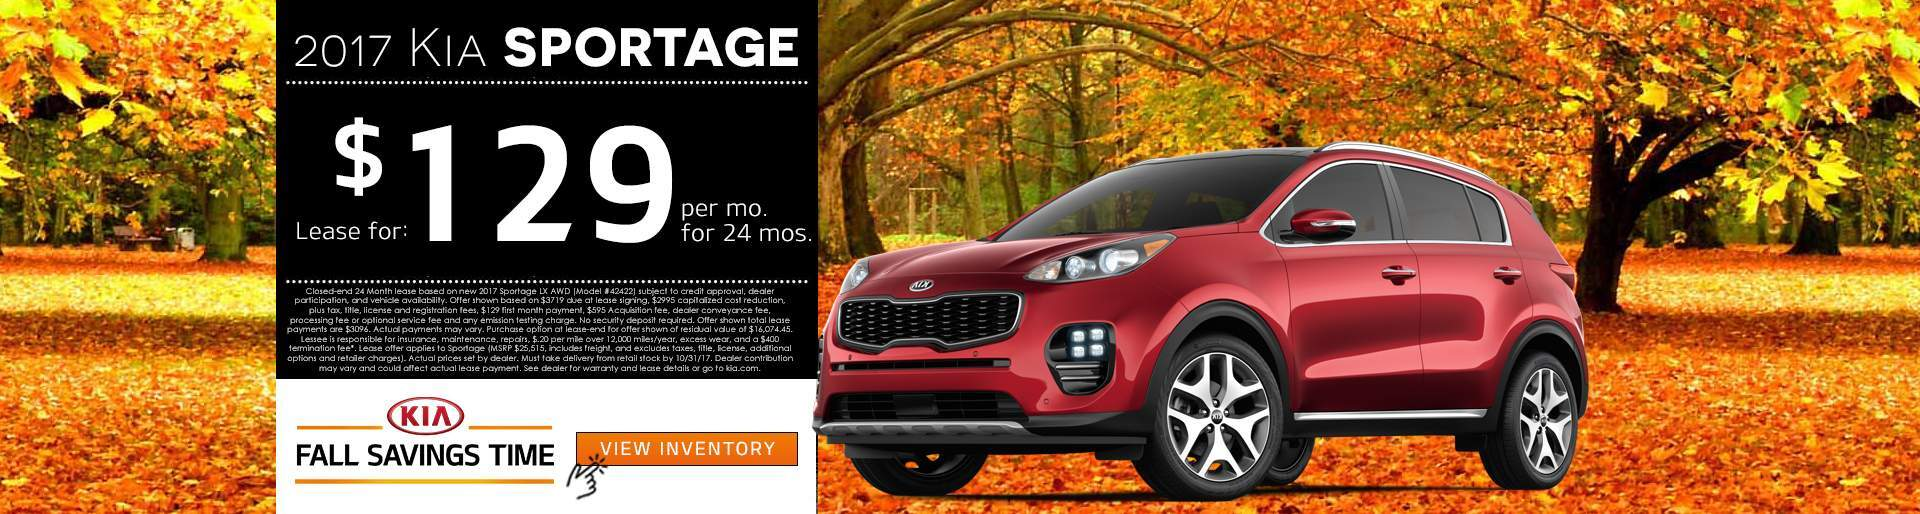 2017 Kia Sportage Offer